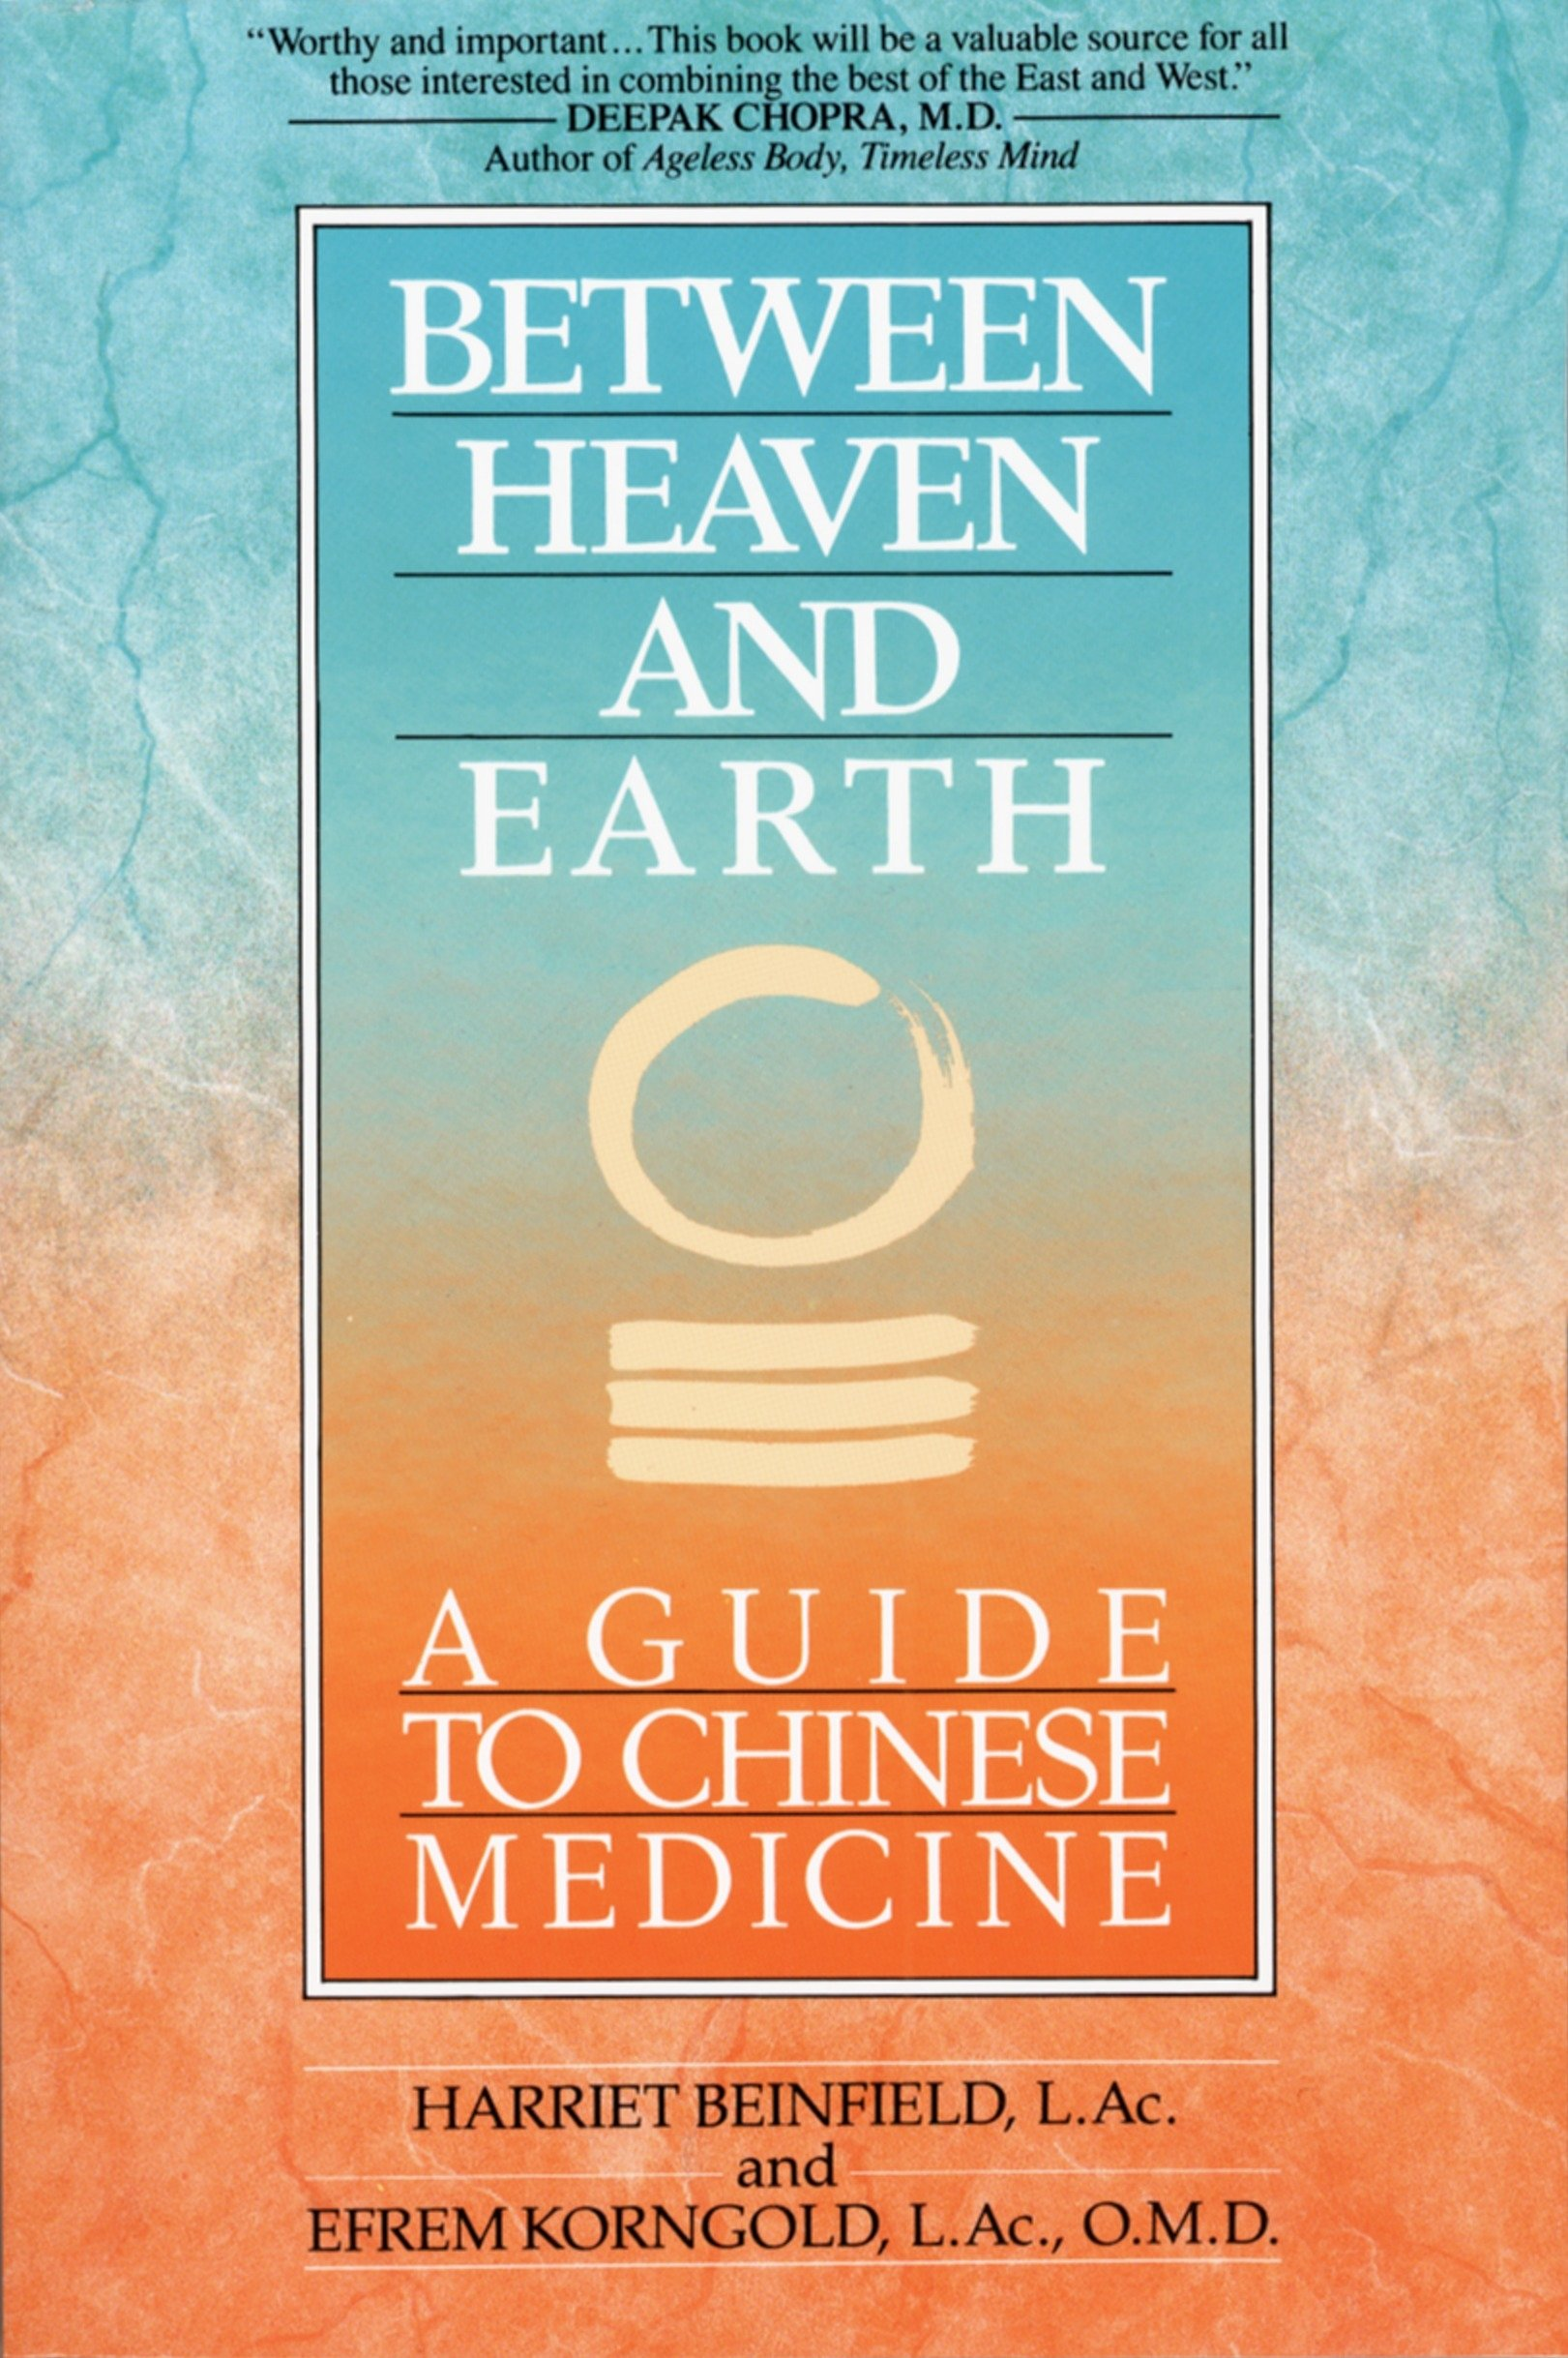 Between Heaven and Earth: A Guide to Chinese Medicine Harriet Beinfield